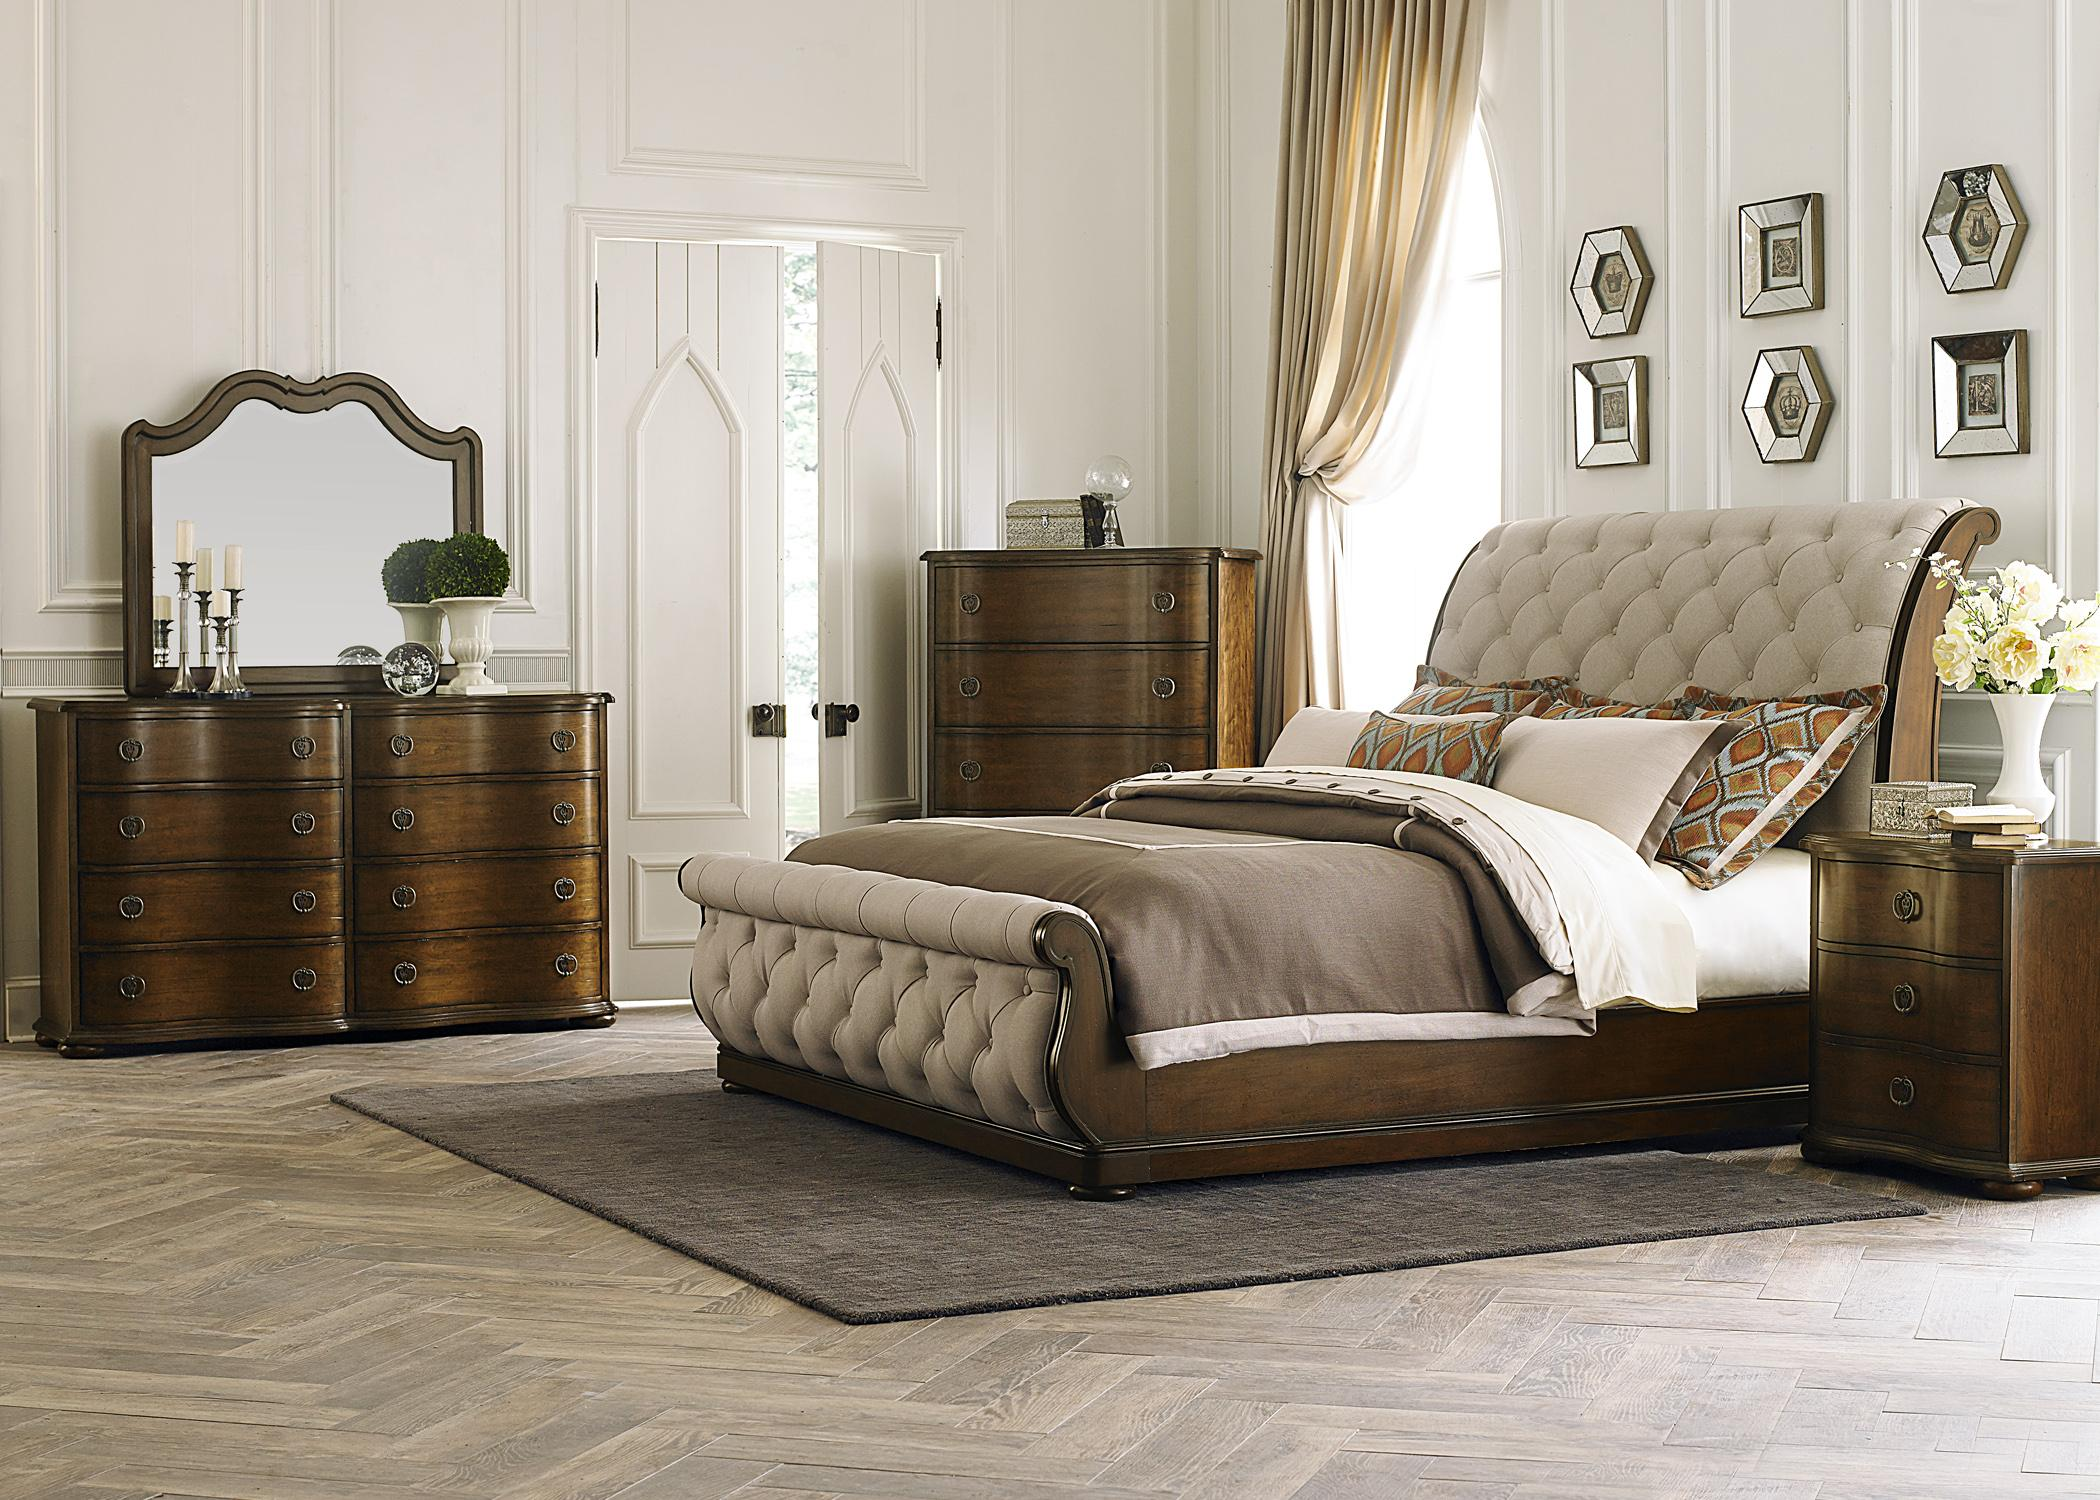 Liberty Furniture Cotswold King Bedroom Group Dream Home Furniture Bedroom Groups